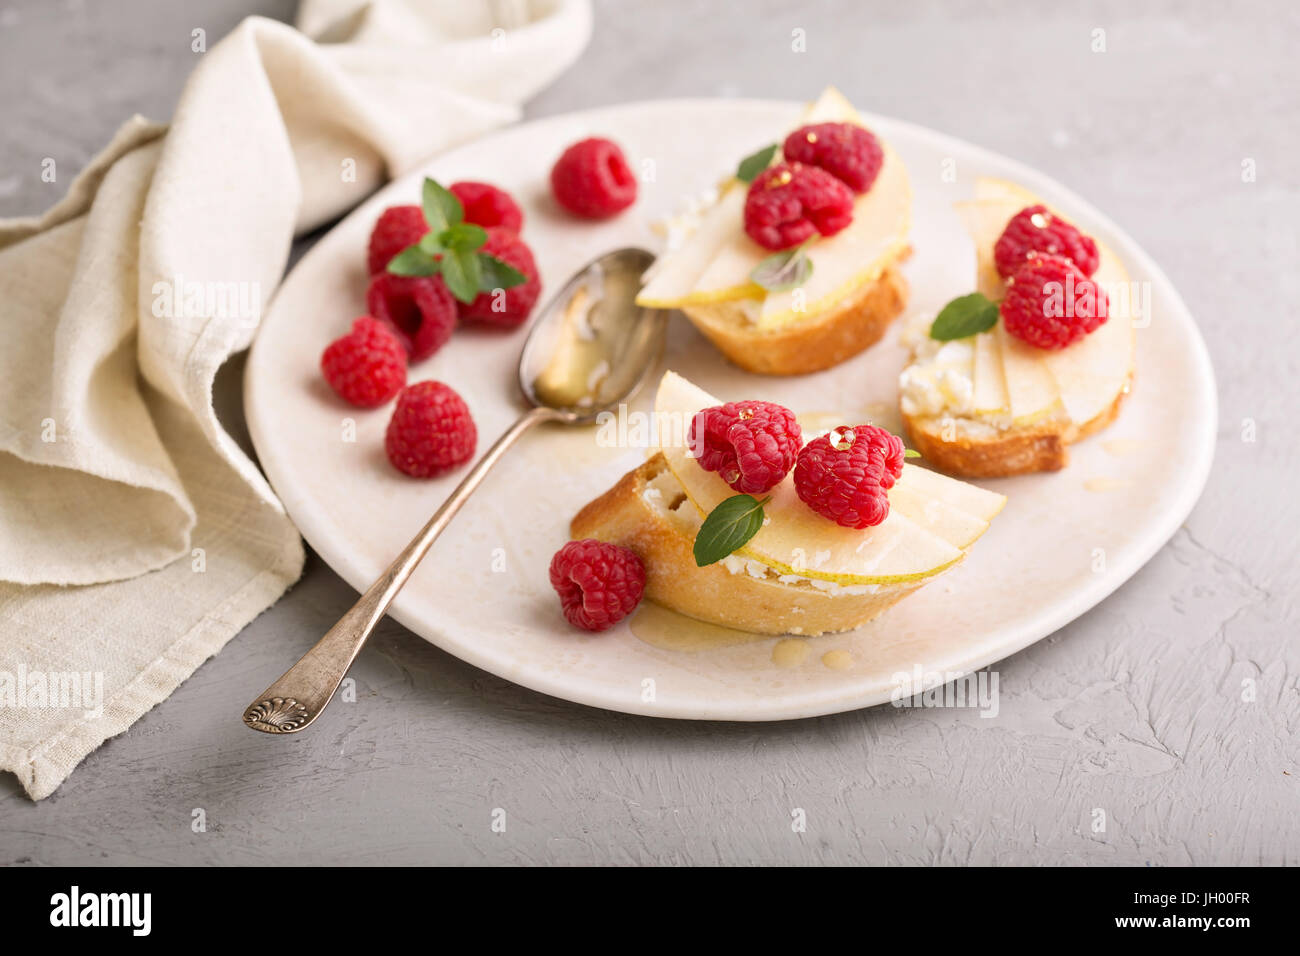 Open faced sandwiches with cheese, pears and raspberry - Stock Image